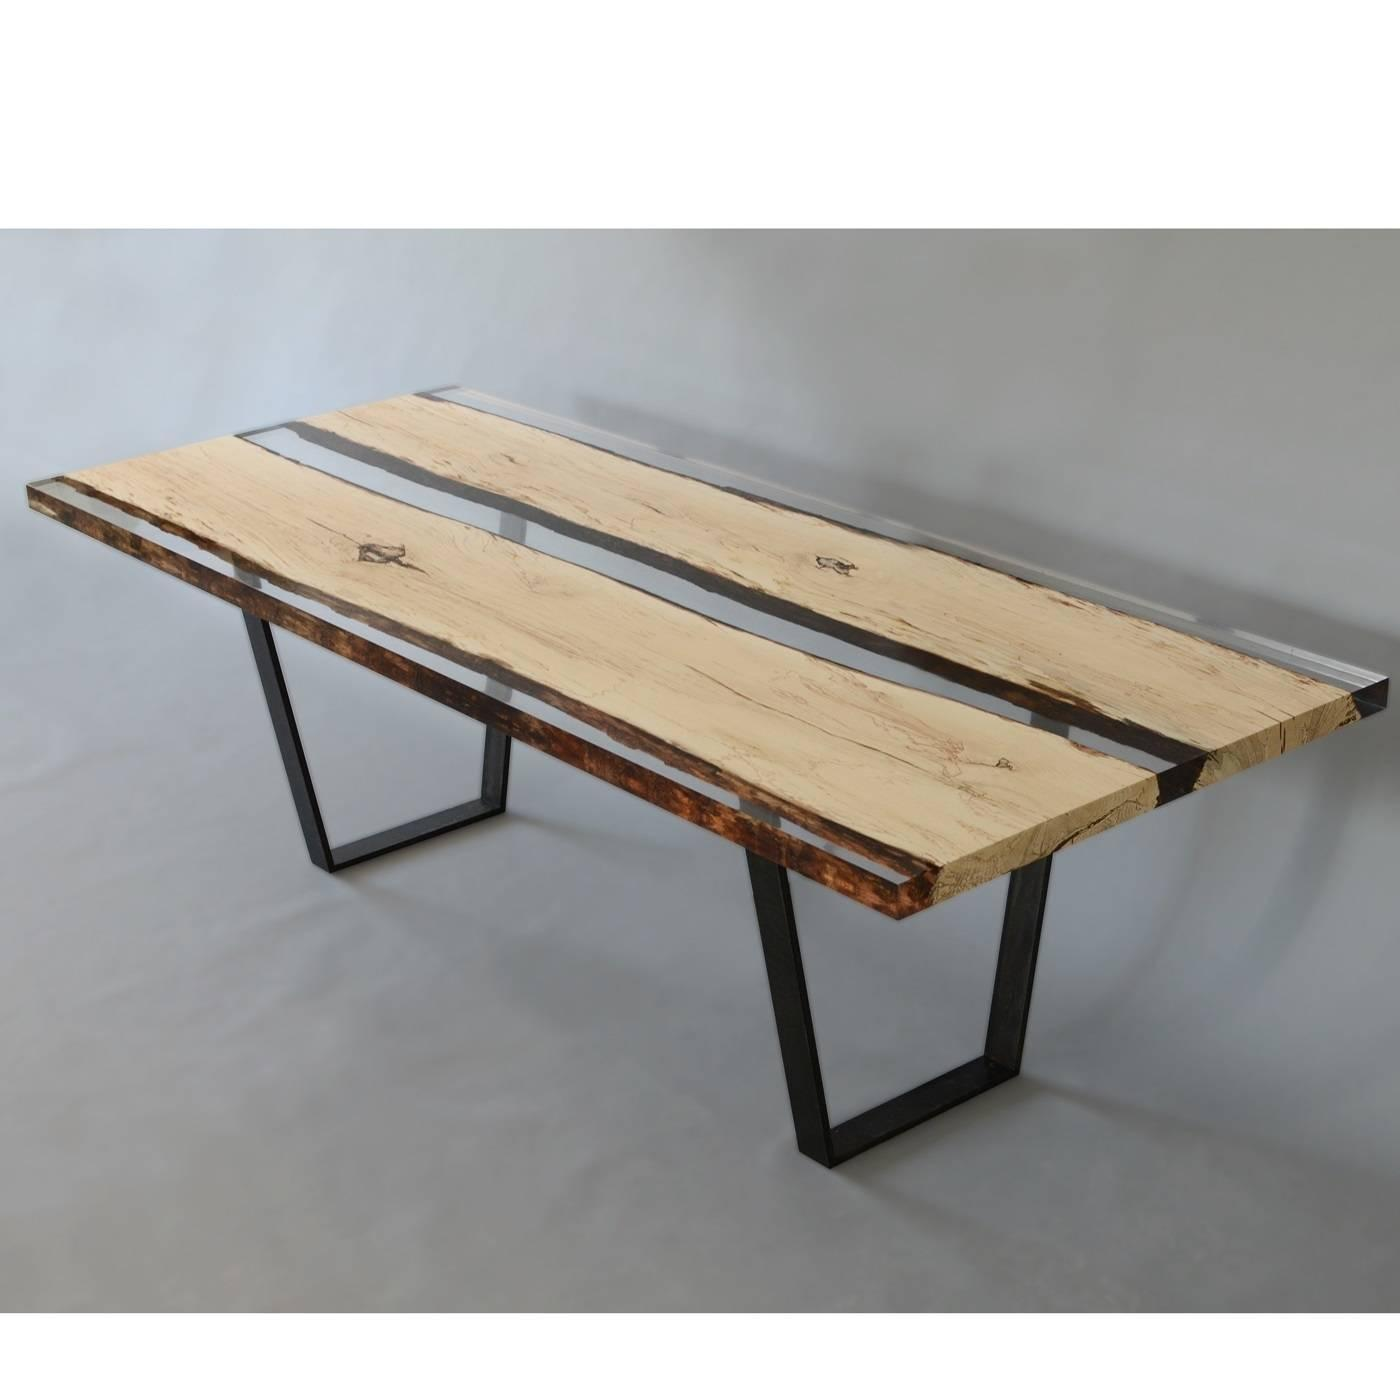 Wood Dining Table For Sale: Wood And Resin Table For Sale At 1stdibs